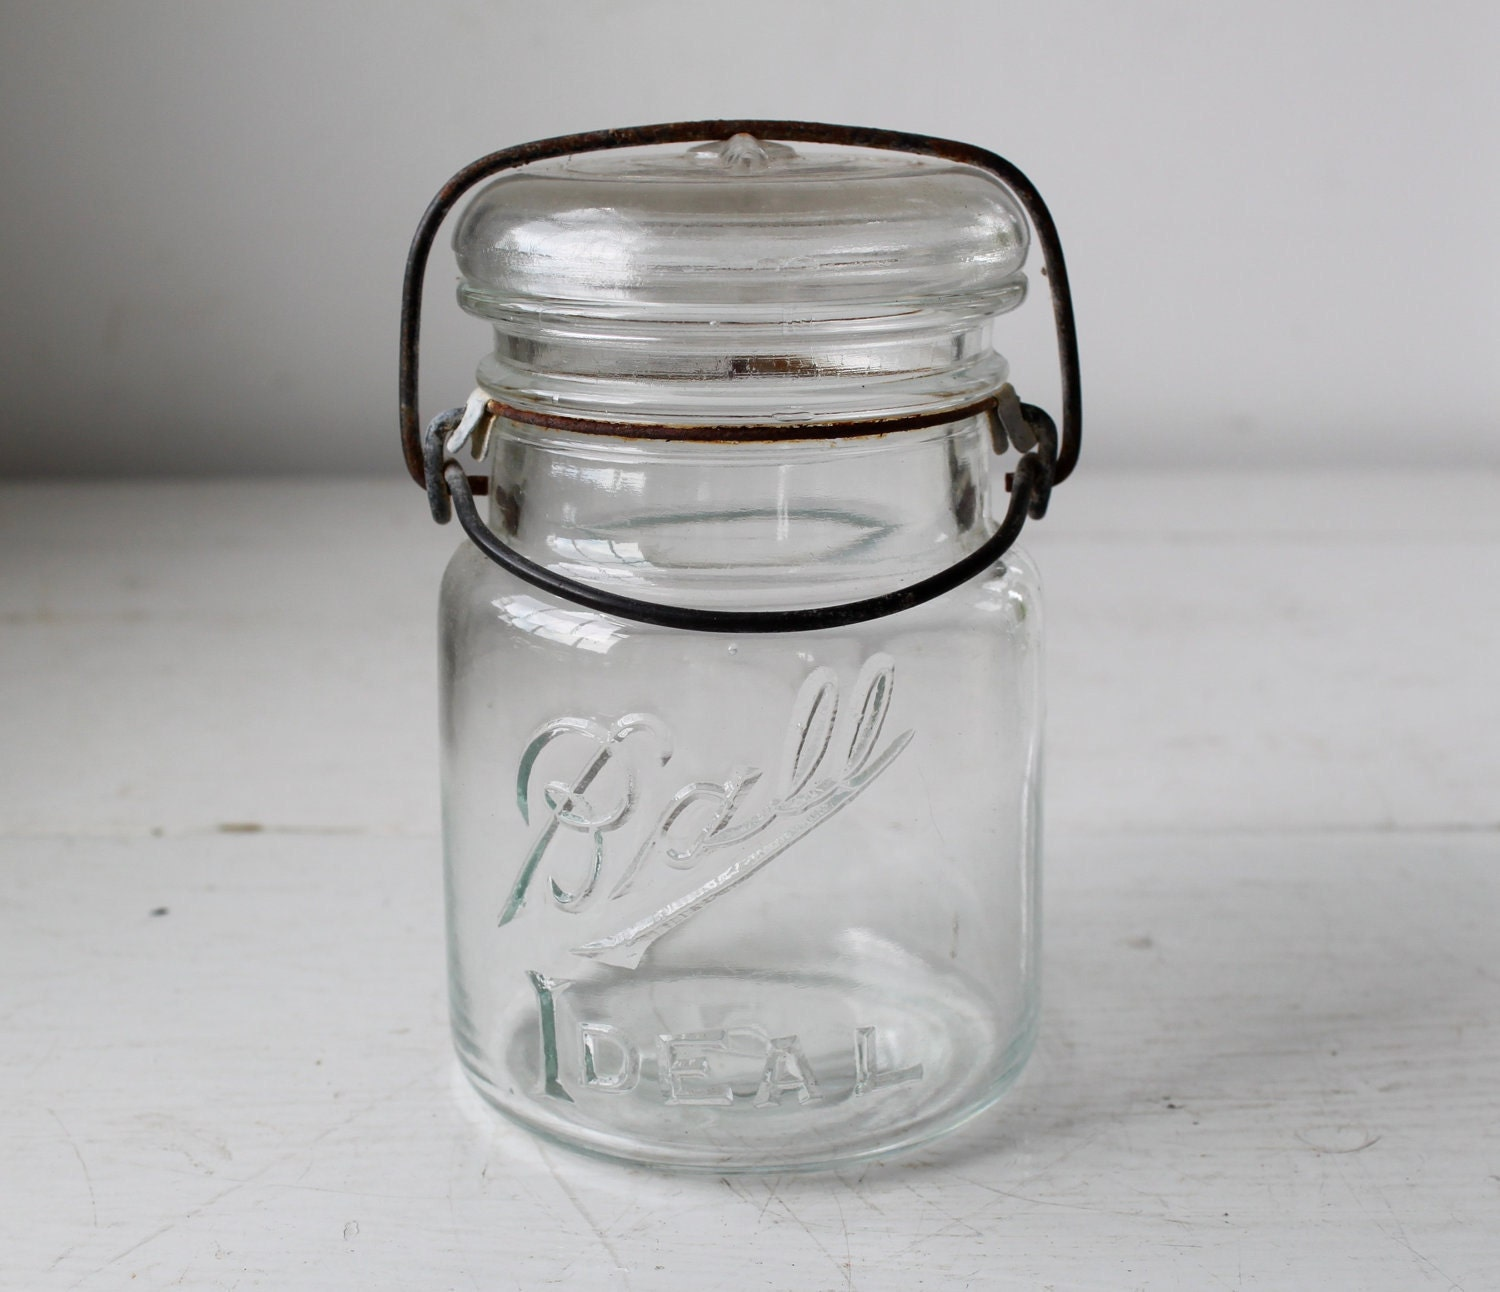 vintage 1910s BALL IDEAL pint canning jar. - Luncheonettevintage